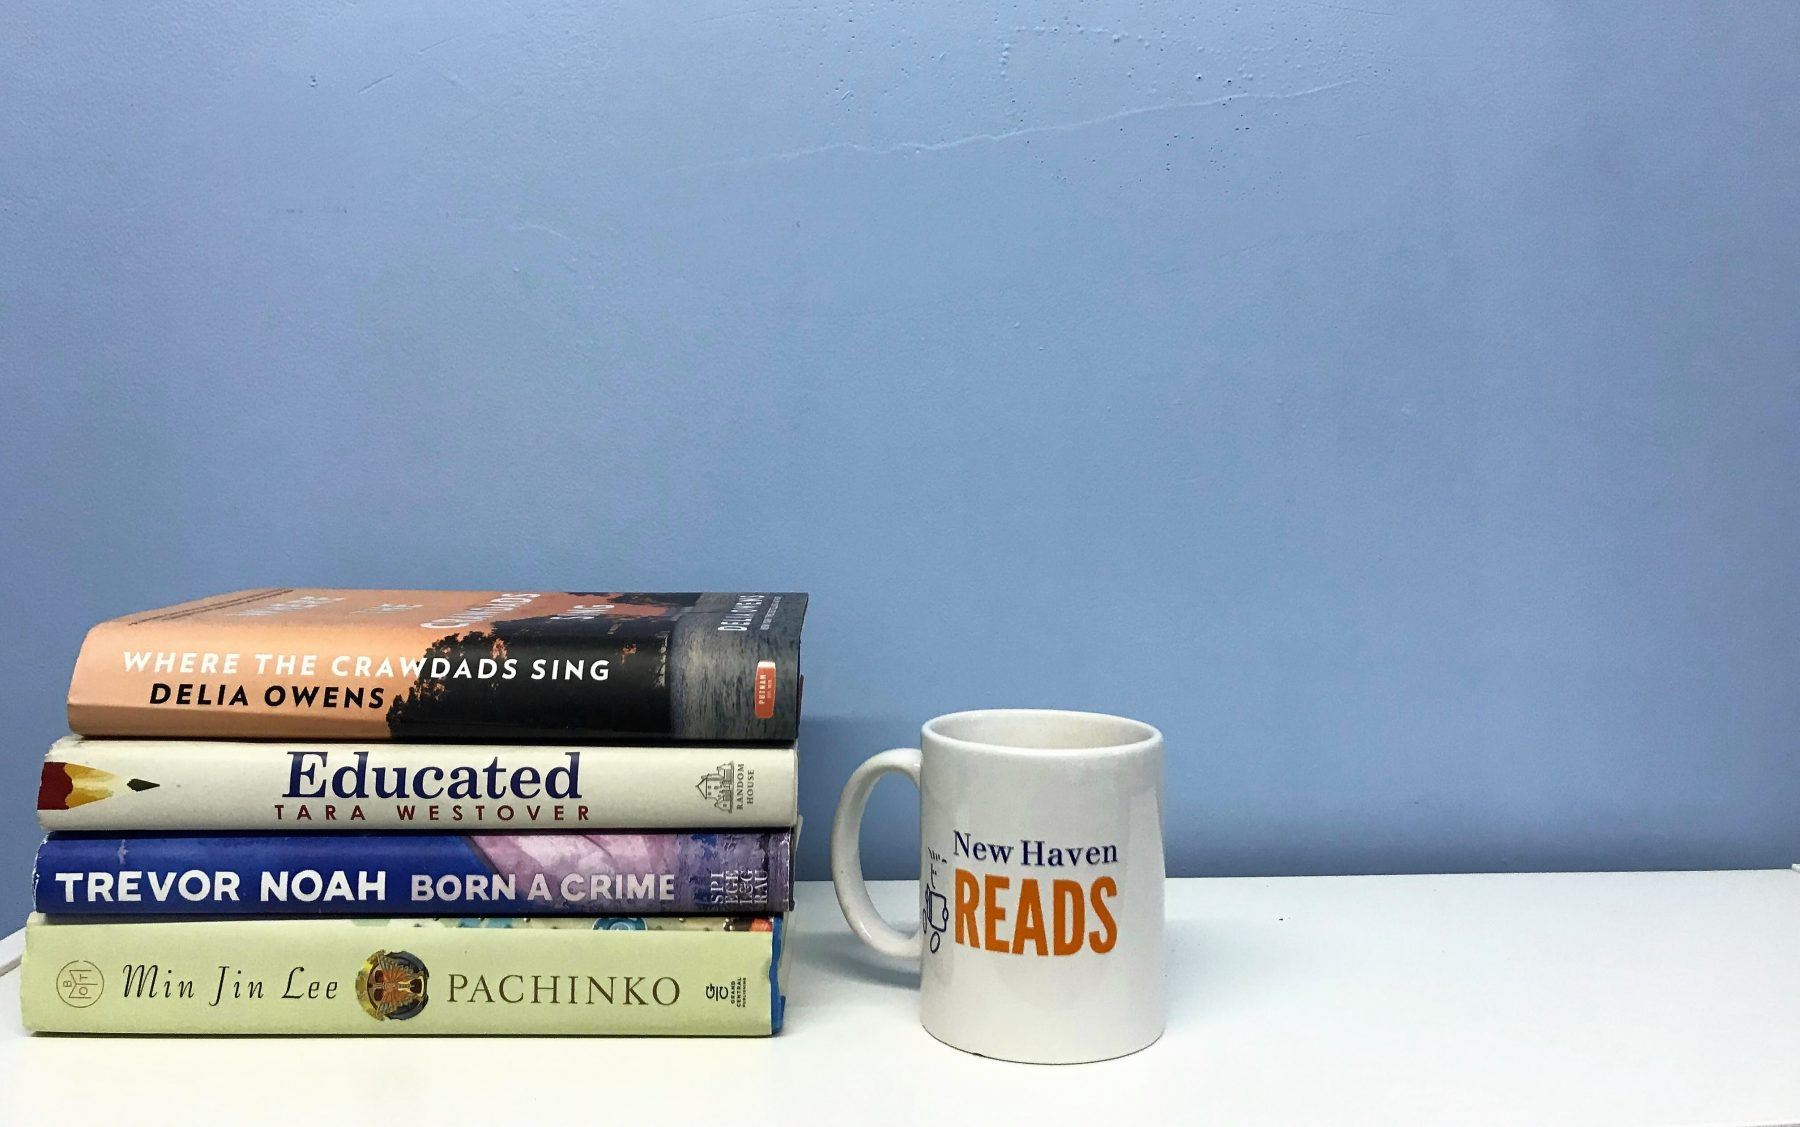 A stack of books sits on a table by an NHR mug.